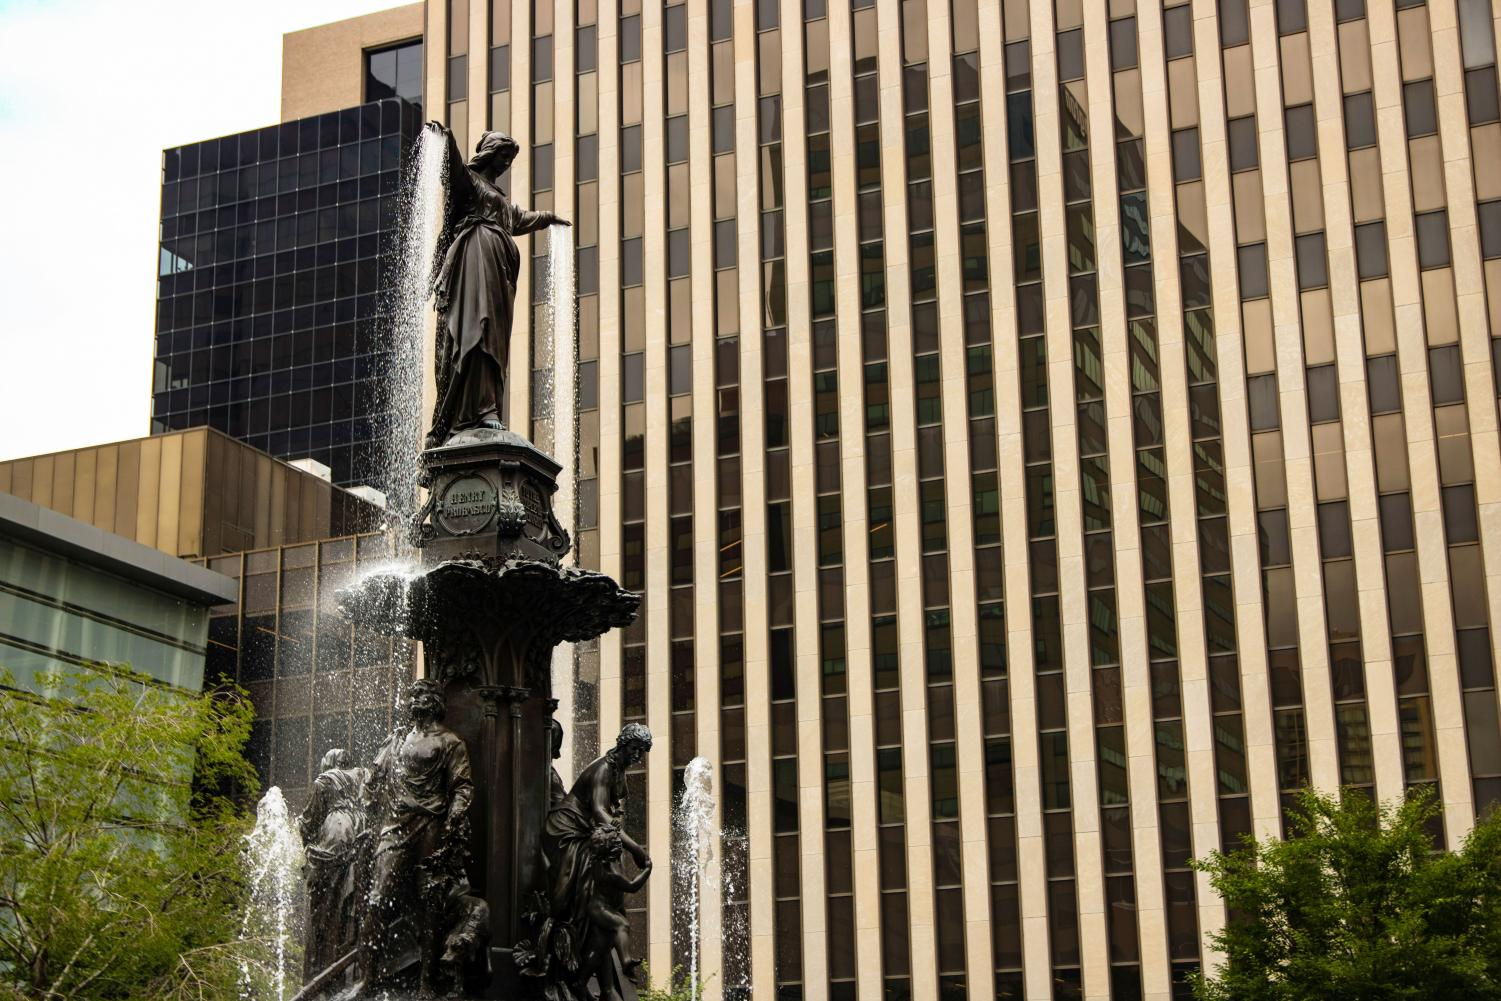 The Tyler Davidson fountain in front of the Fifth Third Center in Downtown Cincinnati.